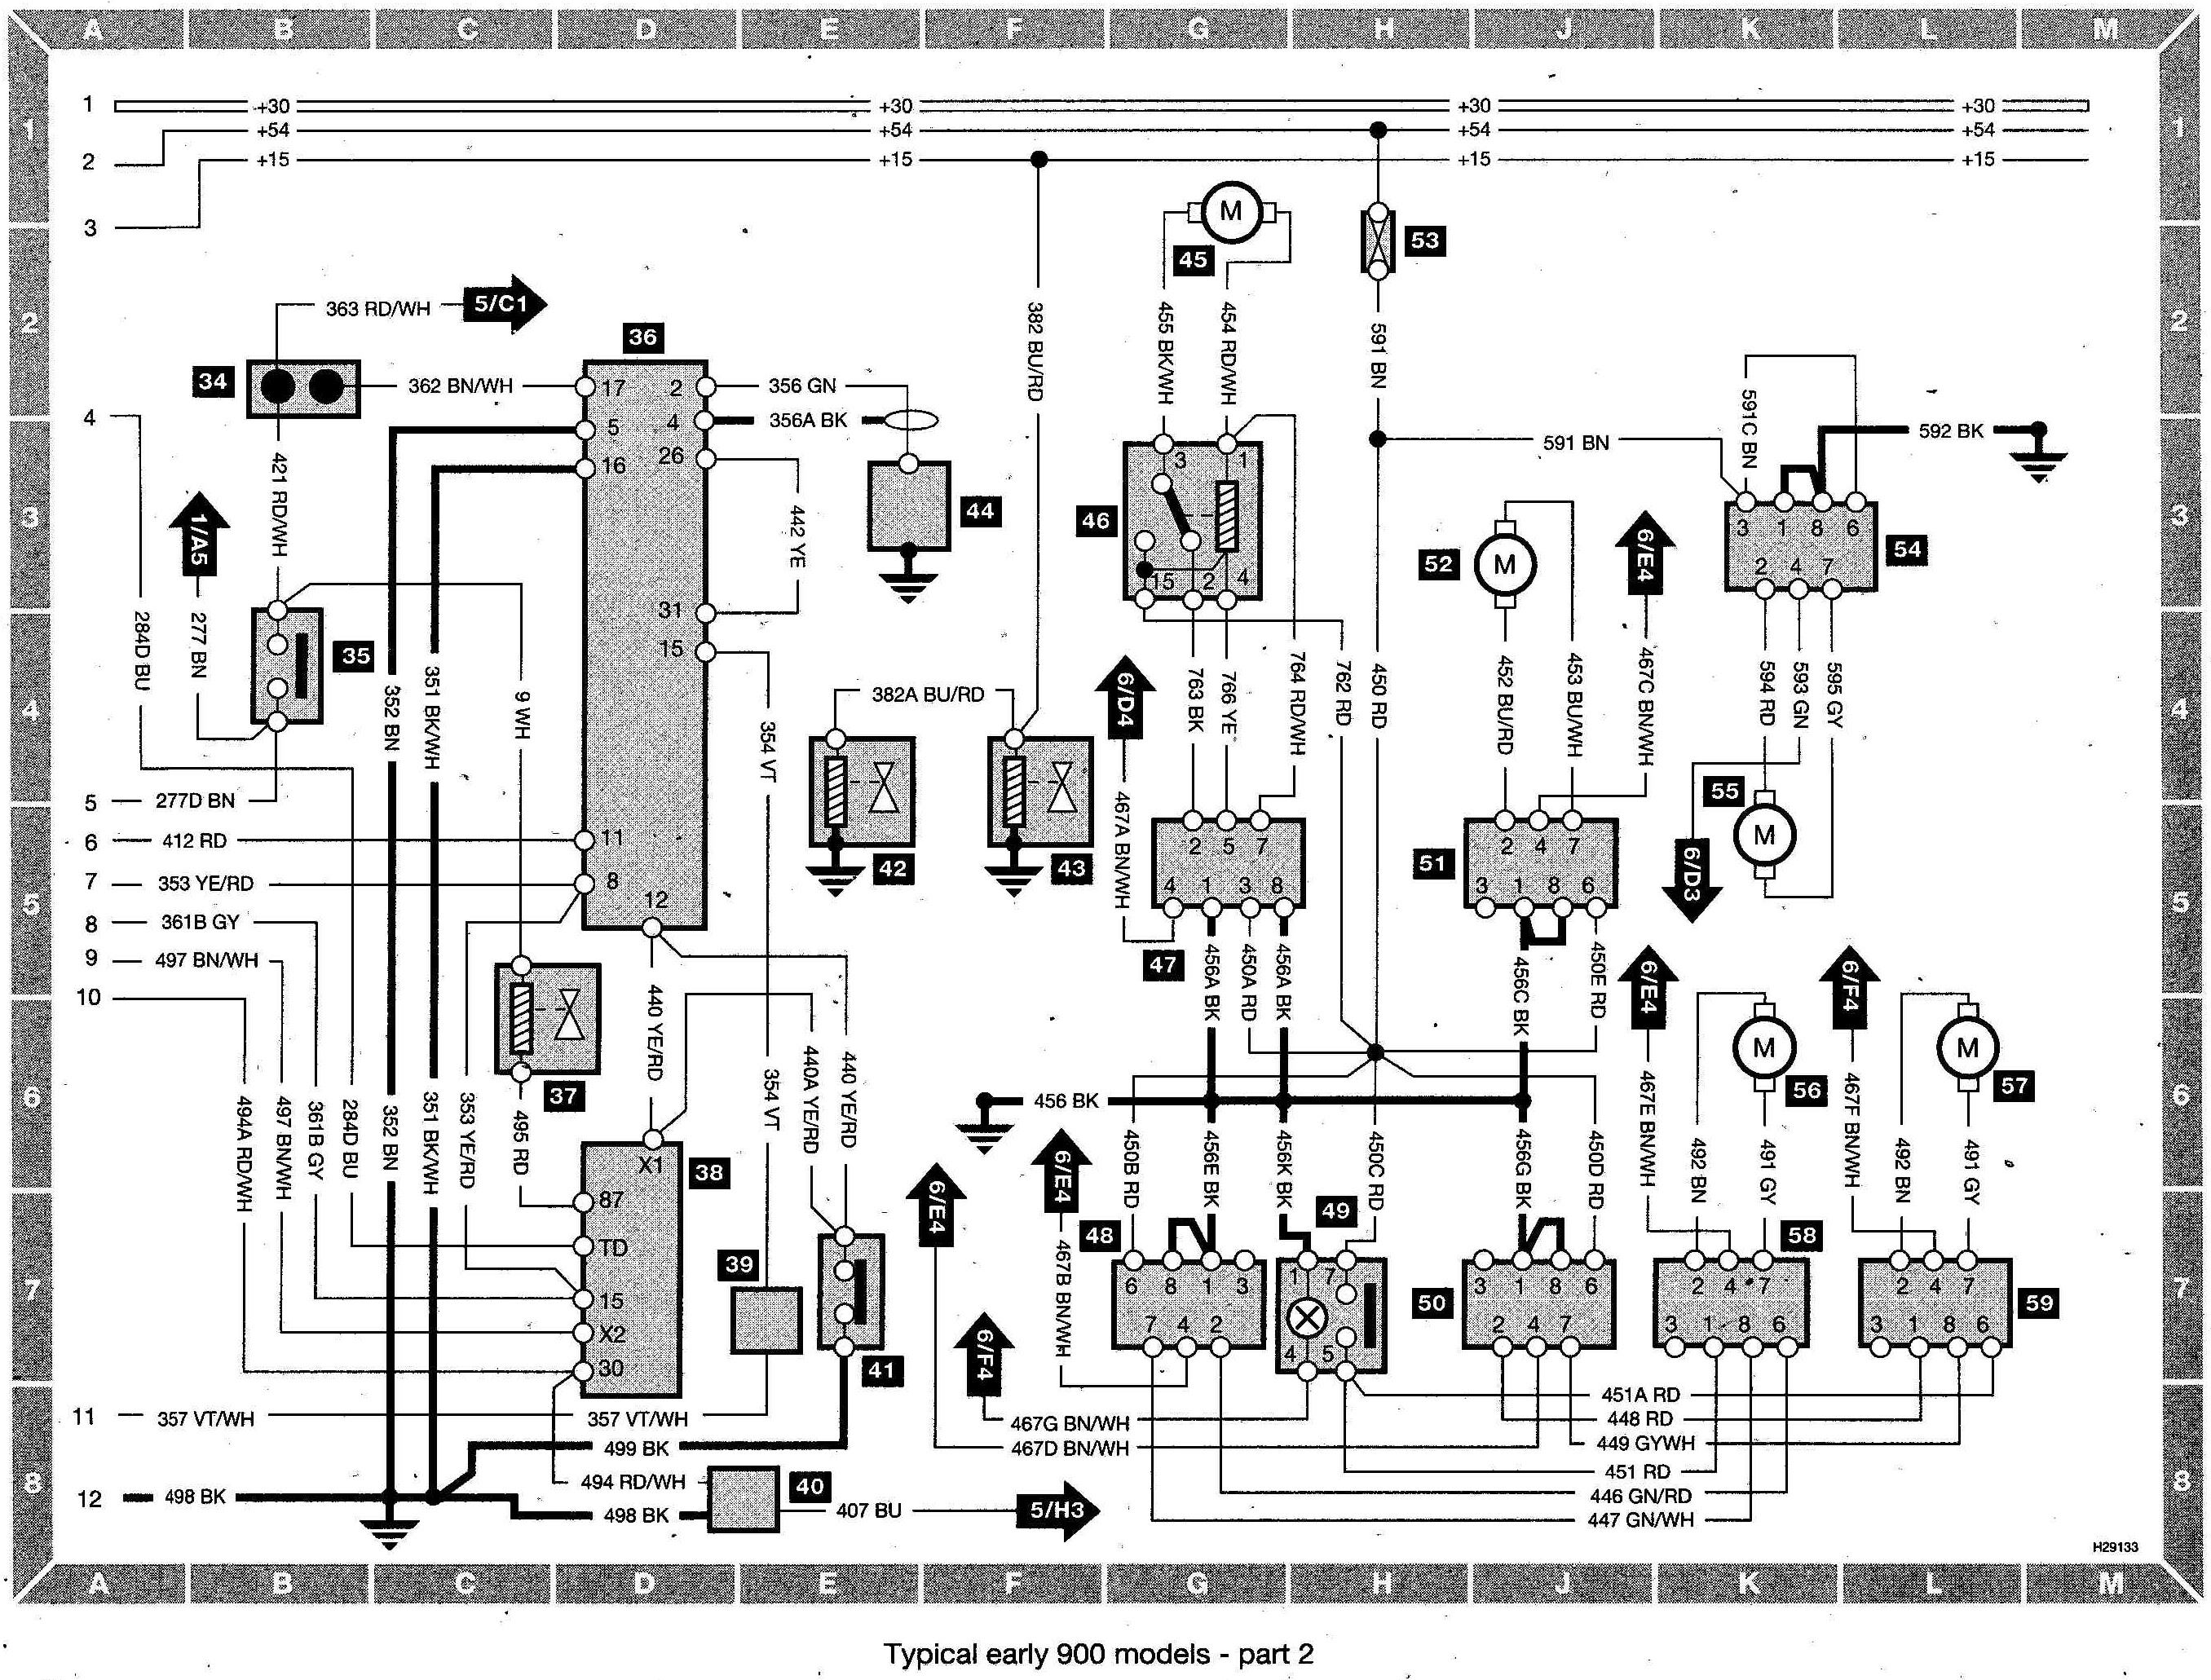 hight resolution of saab turbo diagram wiring diagrams saab 900 turbo vacuum diagram saab turbo diagram